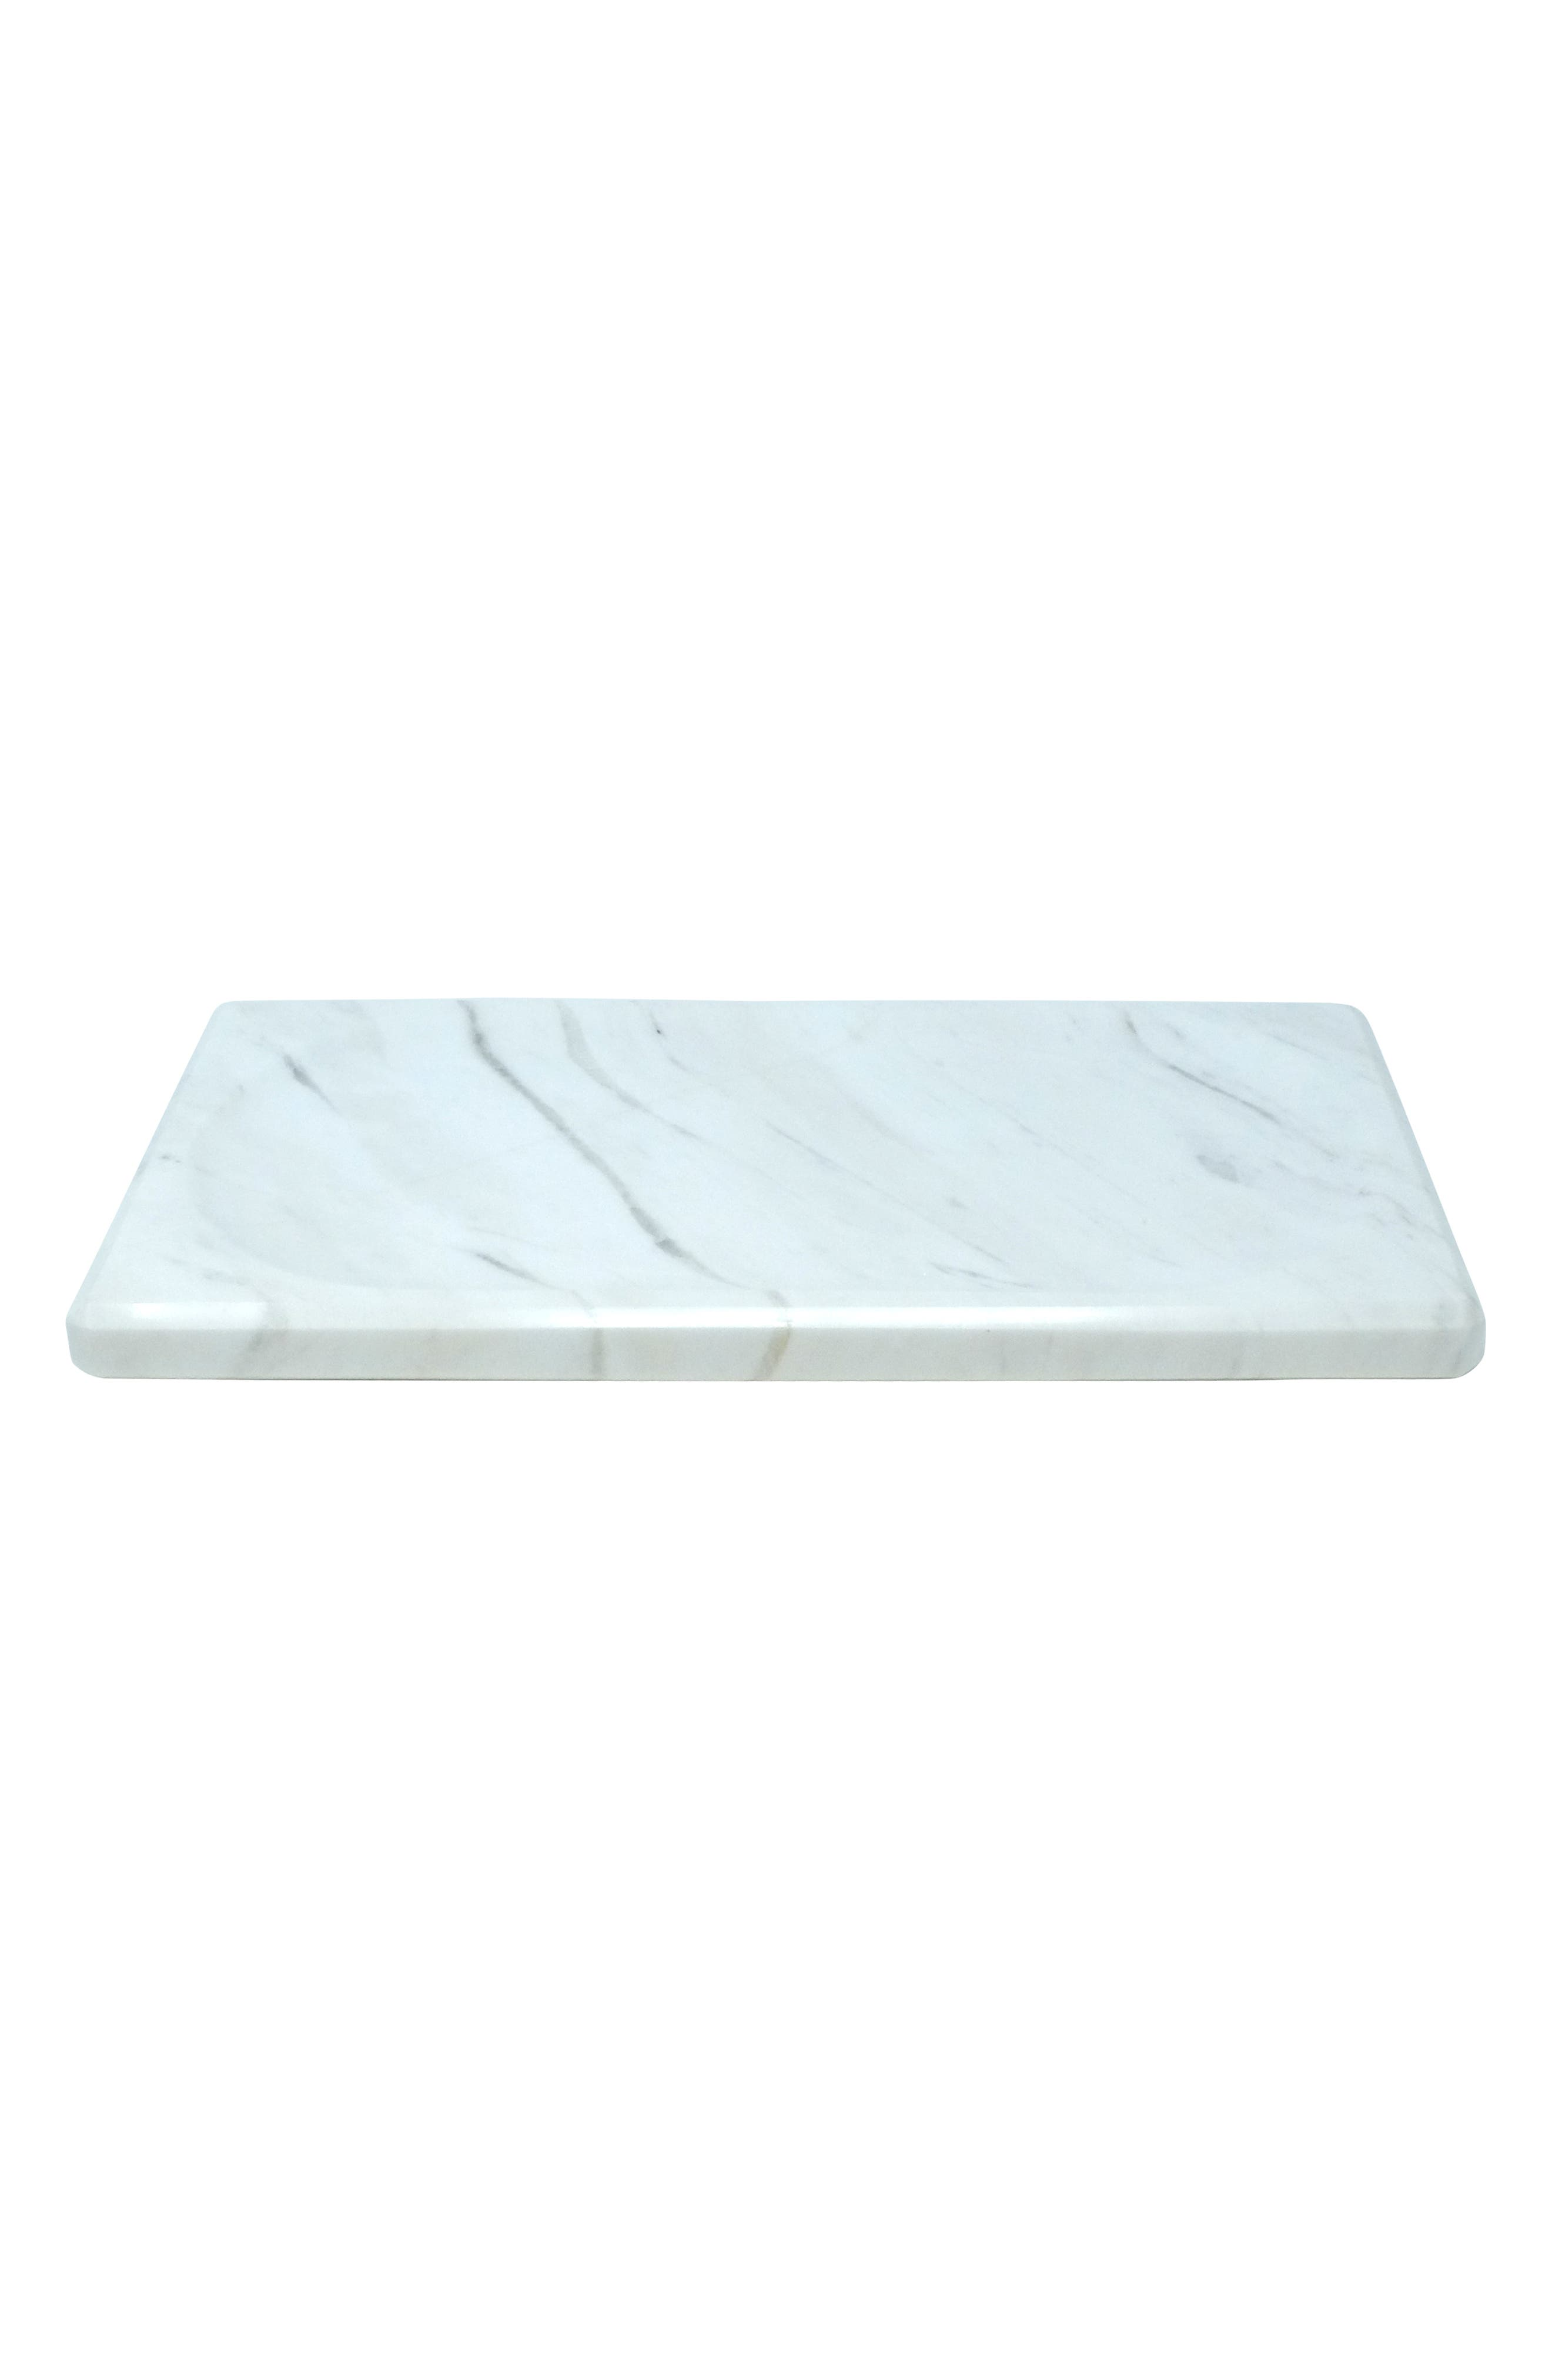 Luna White Marble Tray,                             Main thumbnail 1, color,                             WHITE